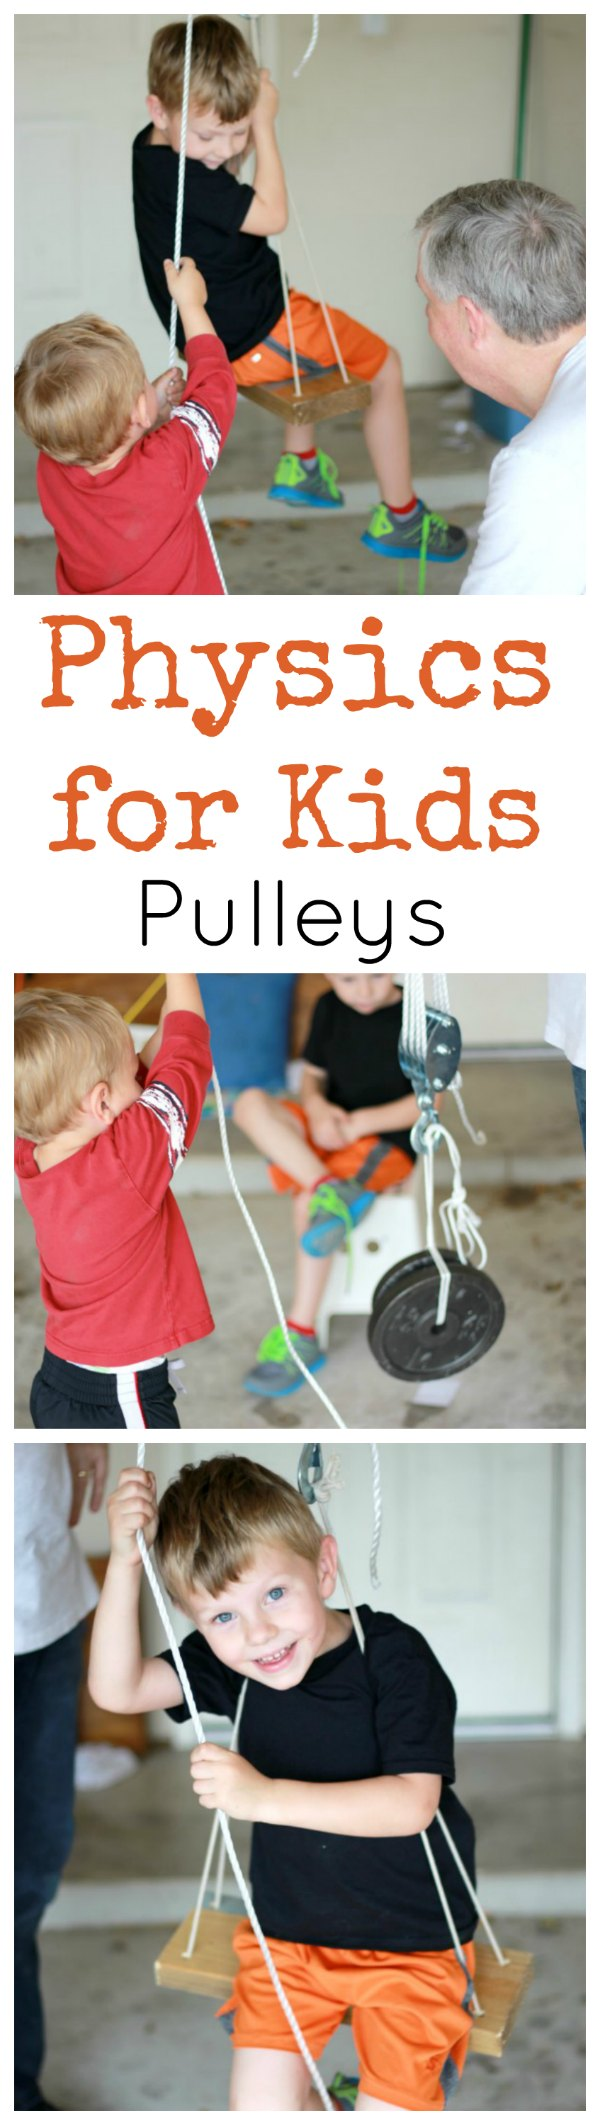 Physics for Kids Pulleys